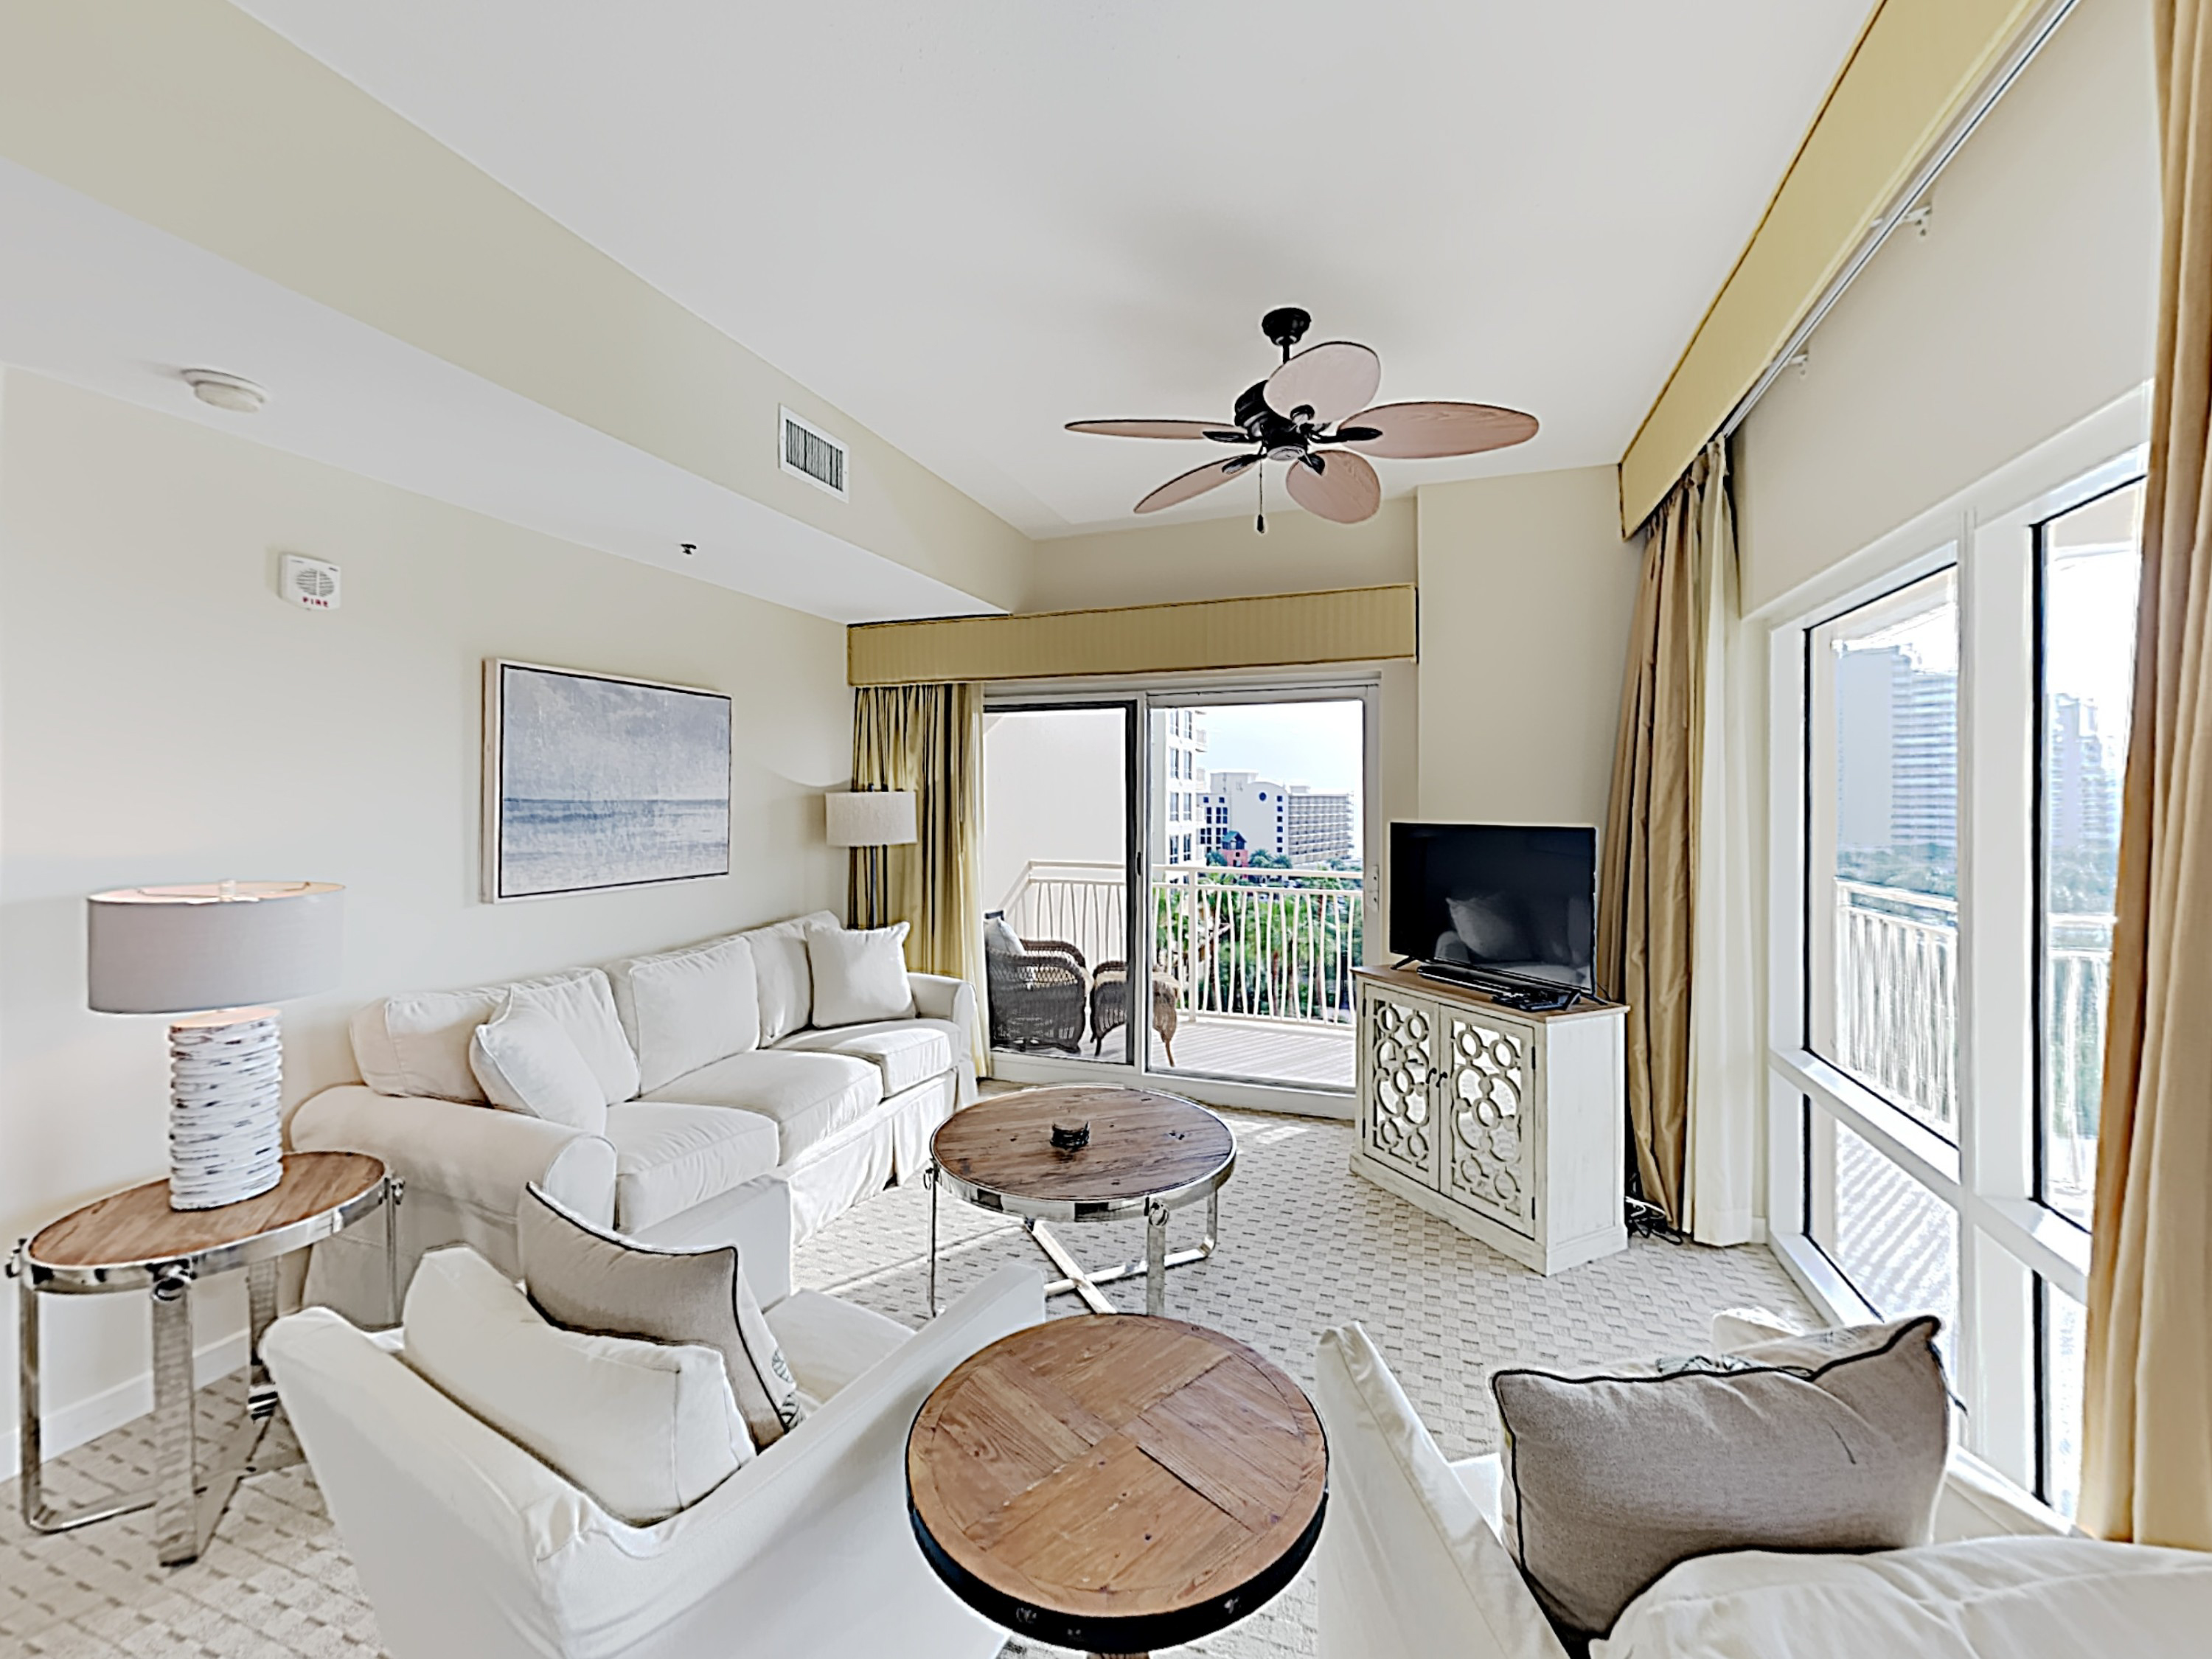 Miramar Beach FL Vacation Rental Welcome to Miramar